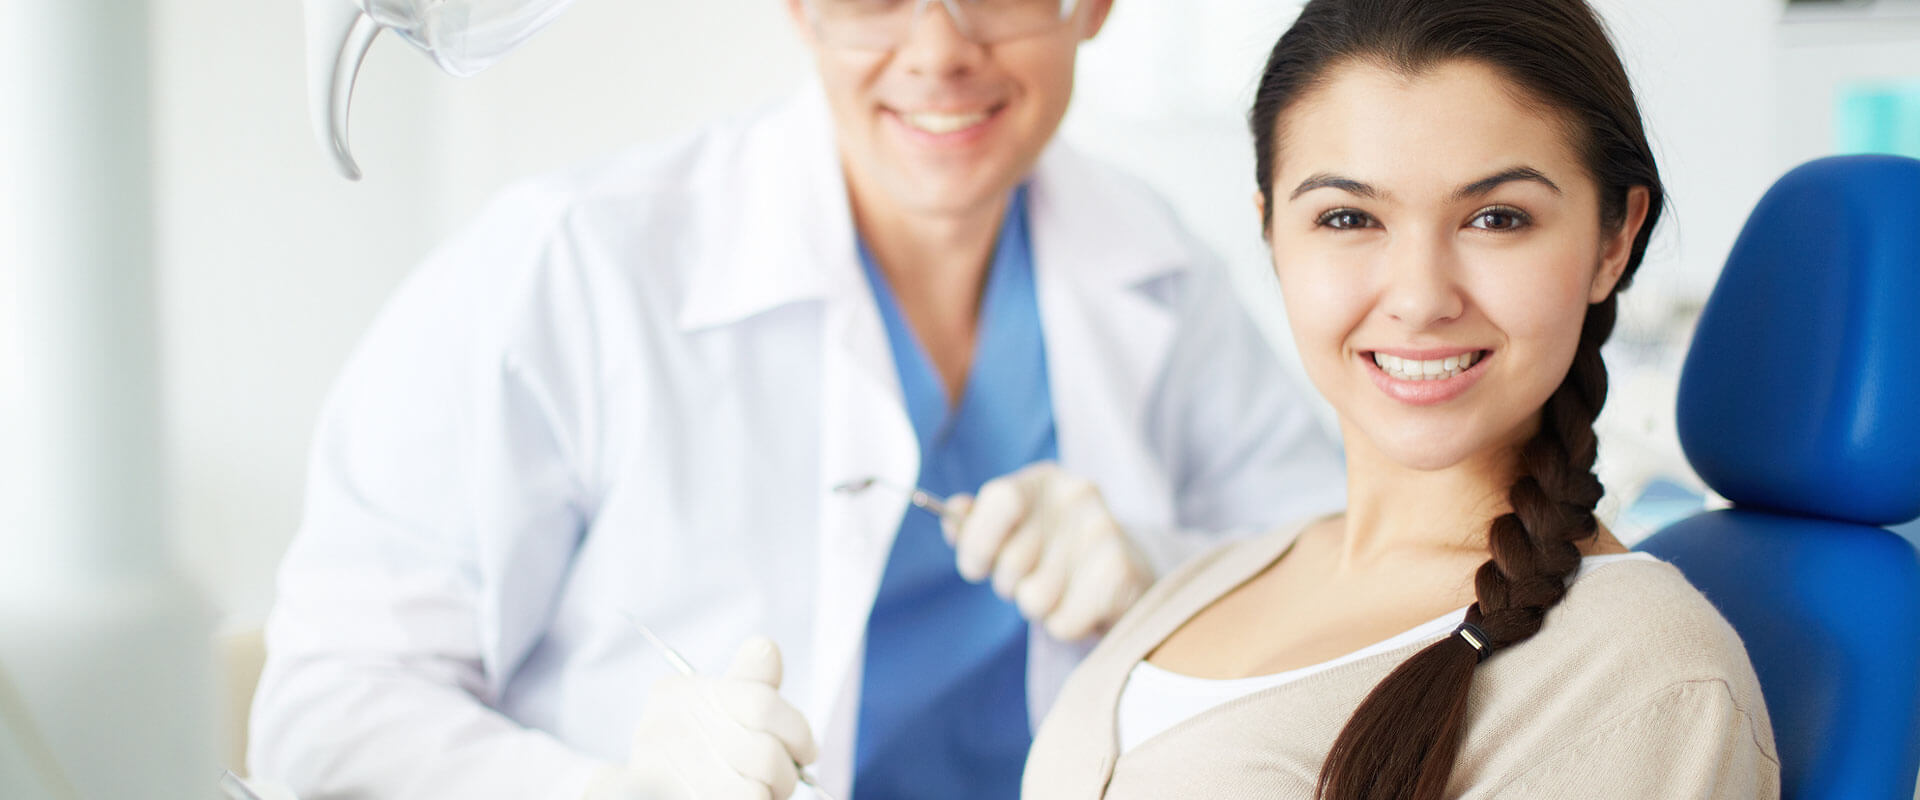 Smiling woman seated on dental chair awaiting root canal treatment